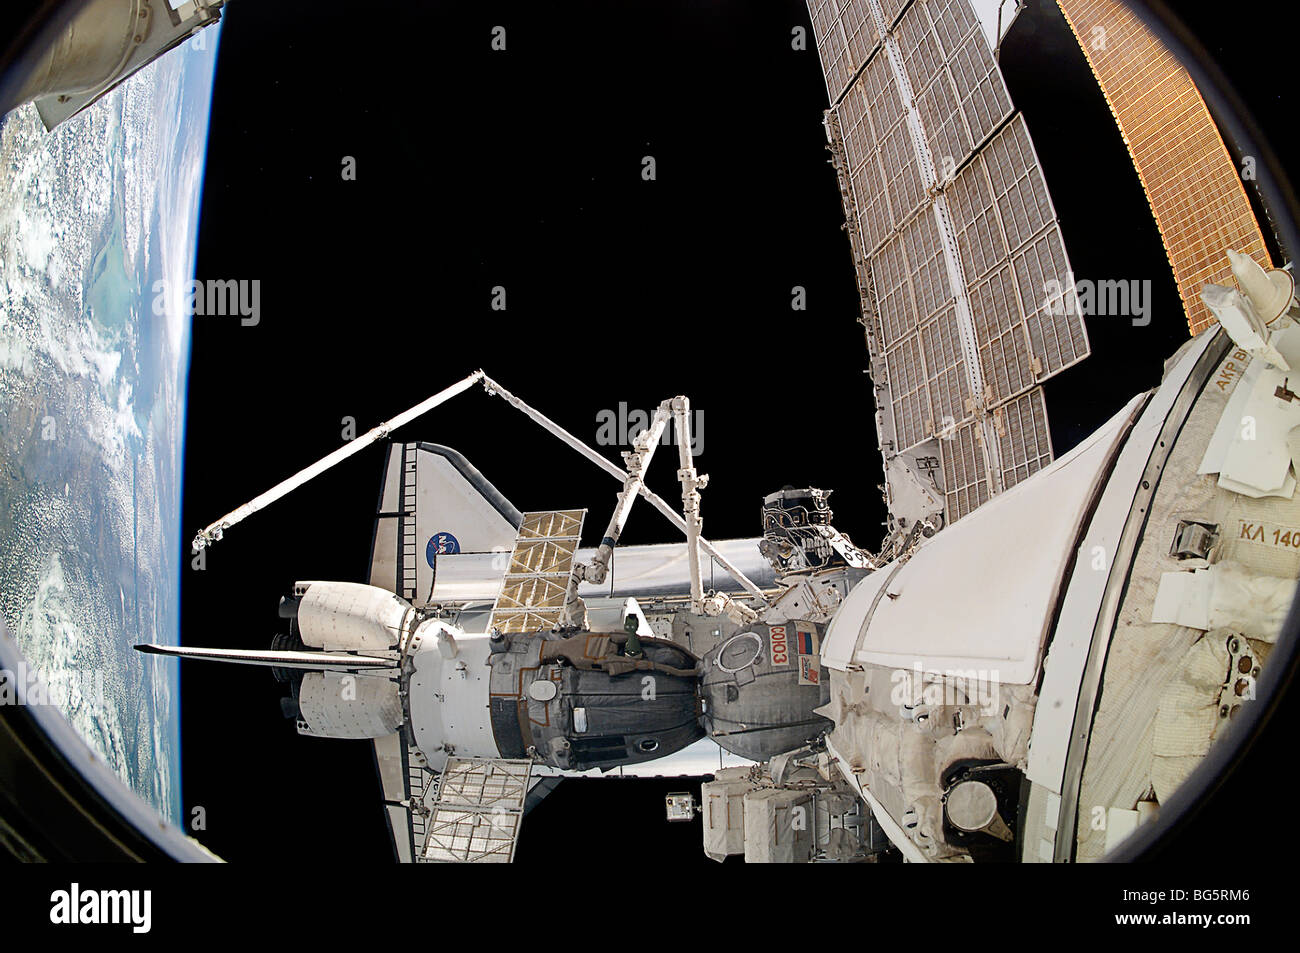 A docked Russian Soyuz spacecraft appears to rest in Space Shuttle Discovery's payload bay. - Stock Image